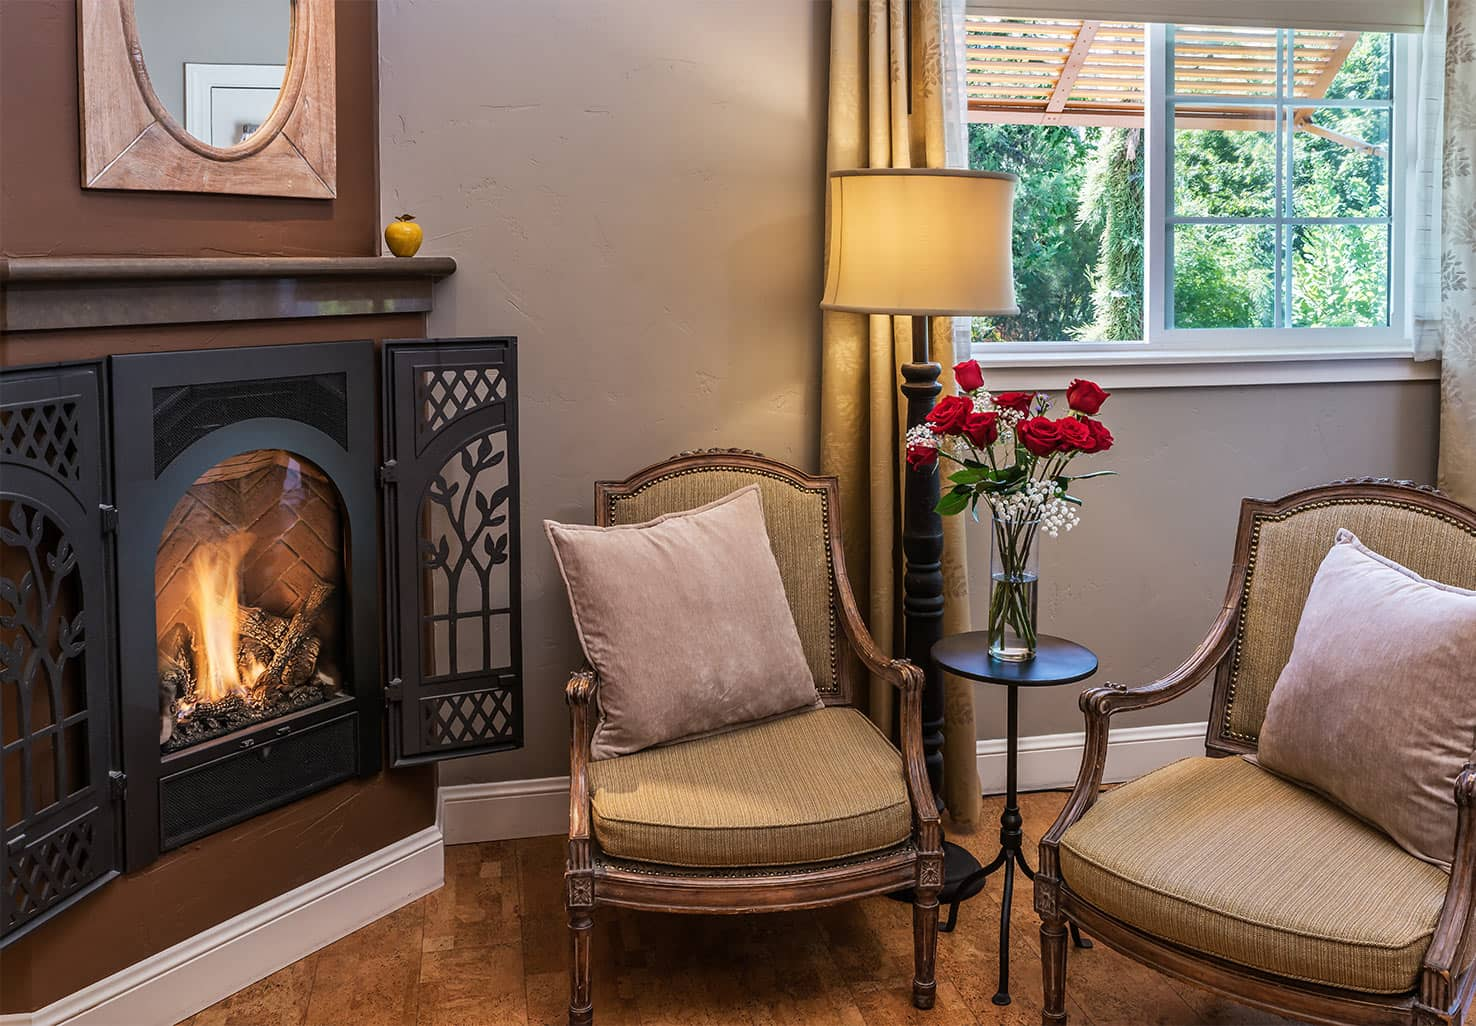 Red Roses by Fireplace in Madrone Room